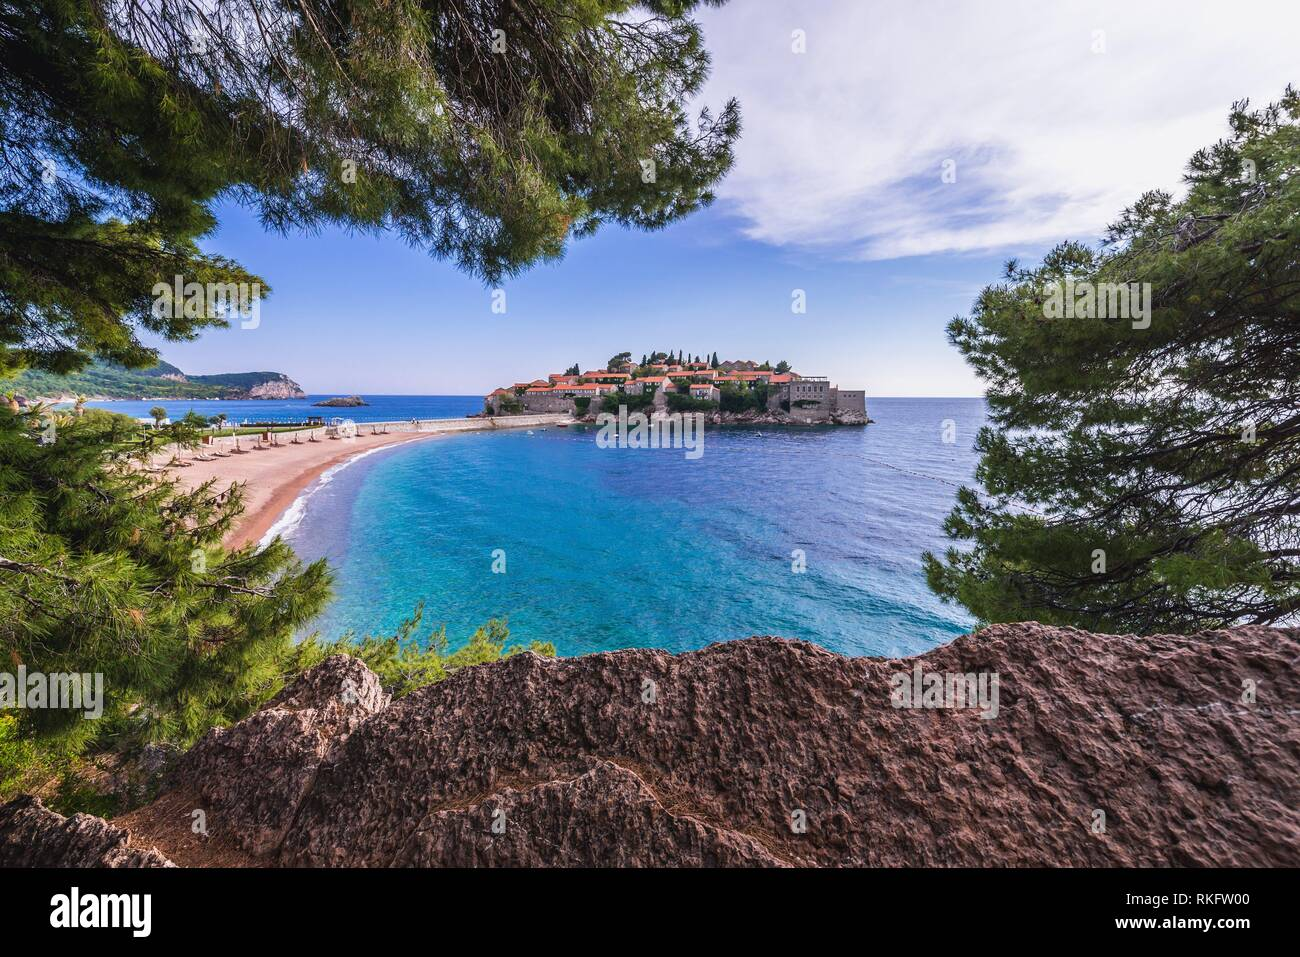 Small island of Sveti Stefan and five star Aman Sveti Stefan hotel resort on the Adriatic coast of Montenegro. - Stock Image